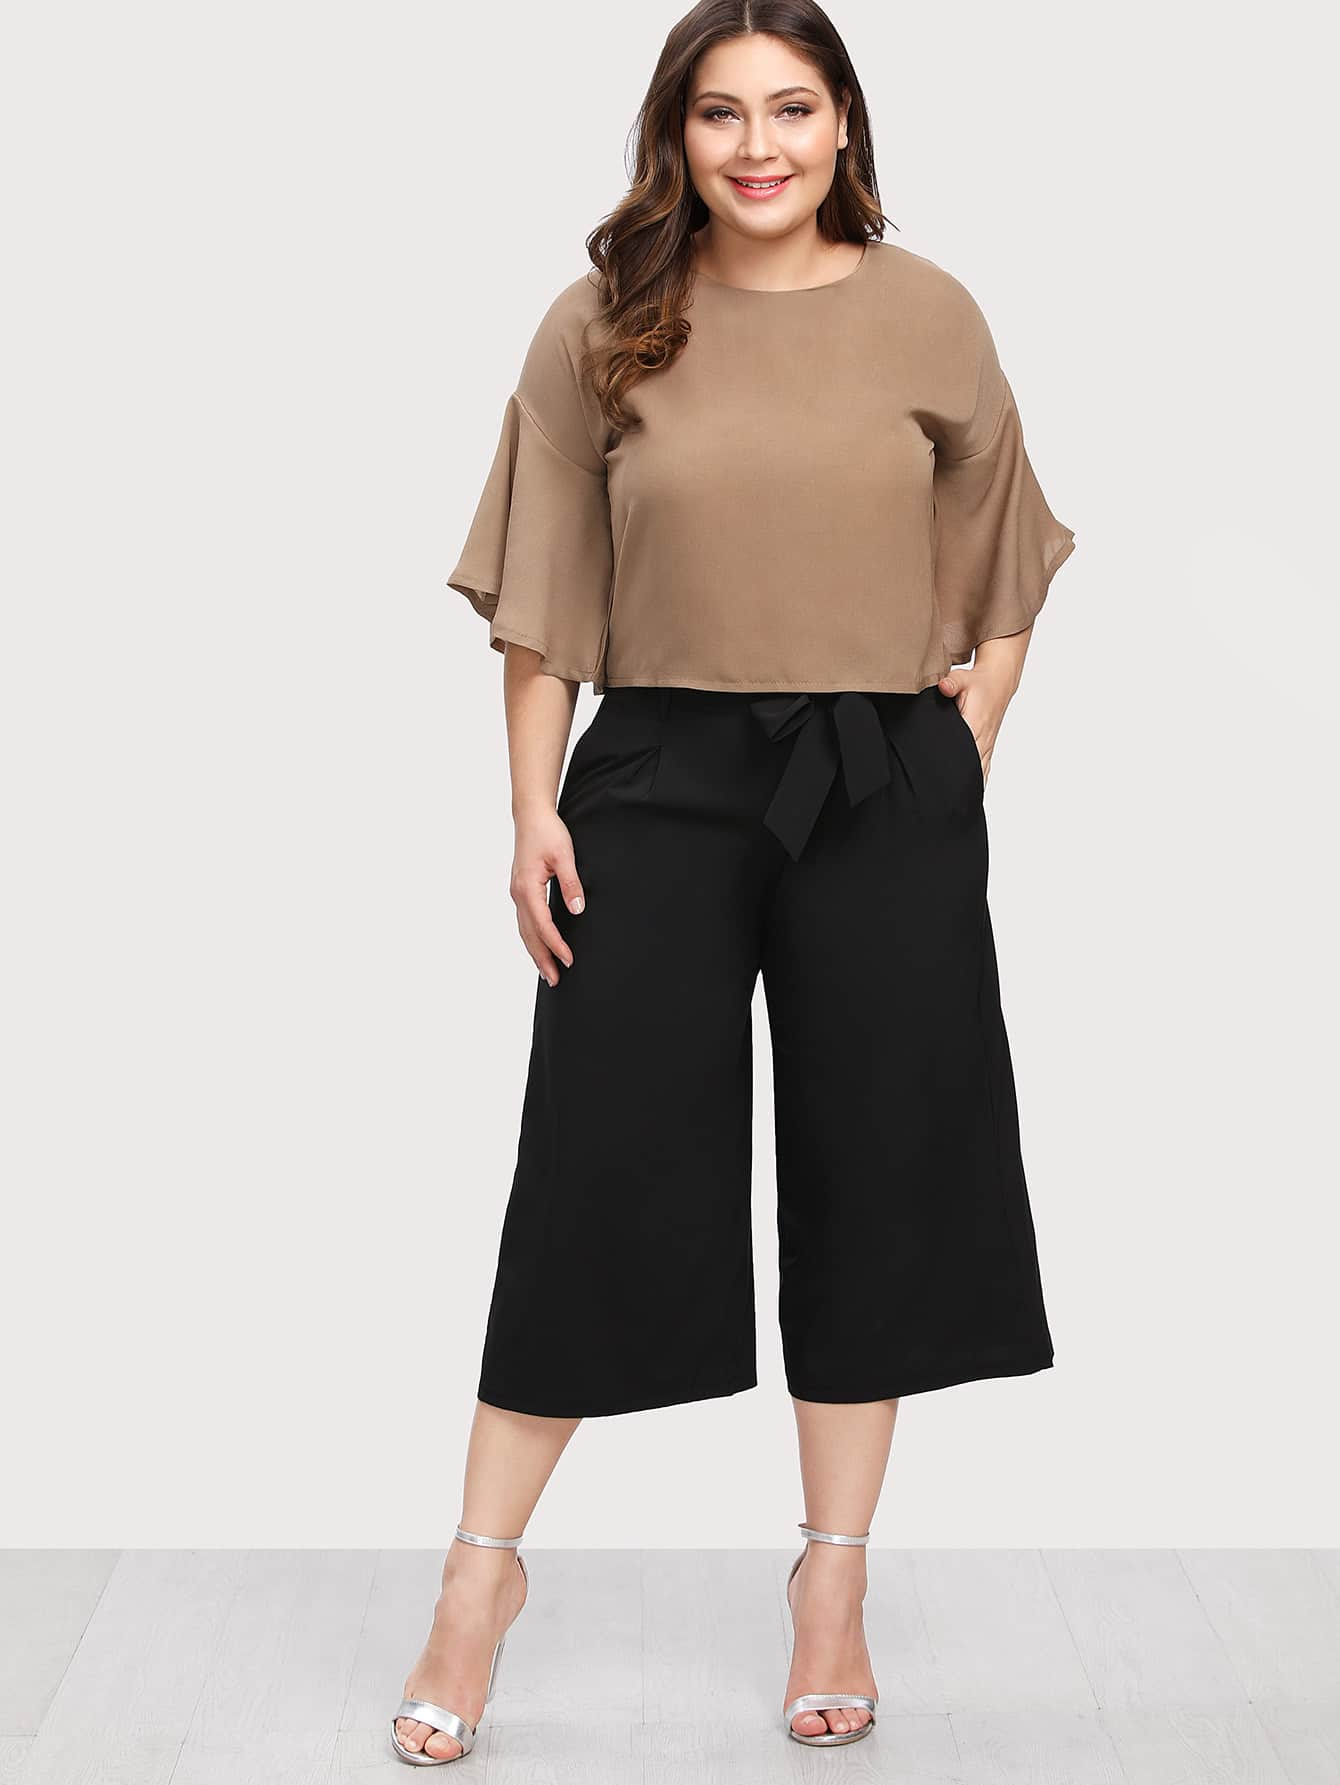 Image of Flounce Sleeve Top & Capris Pants